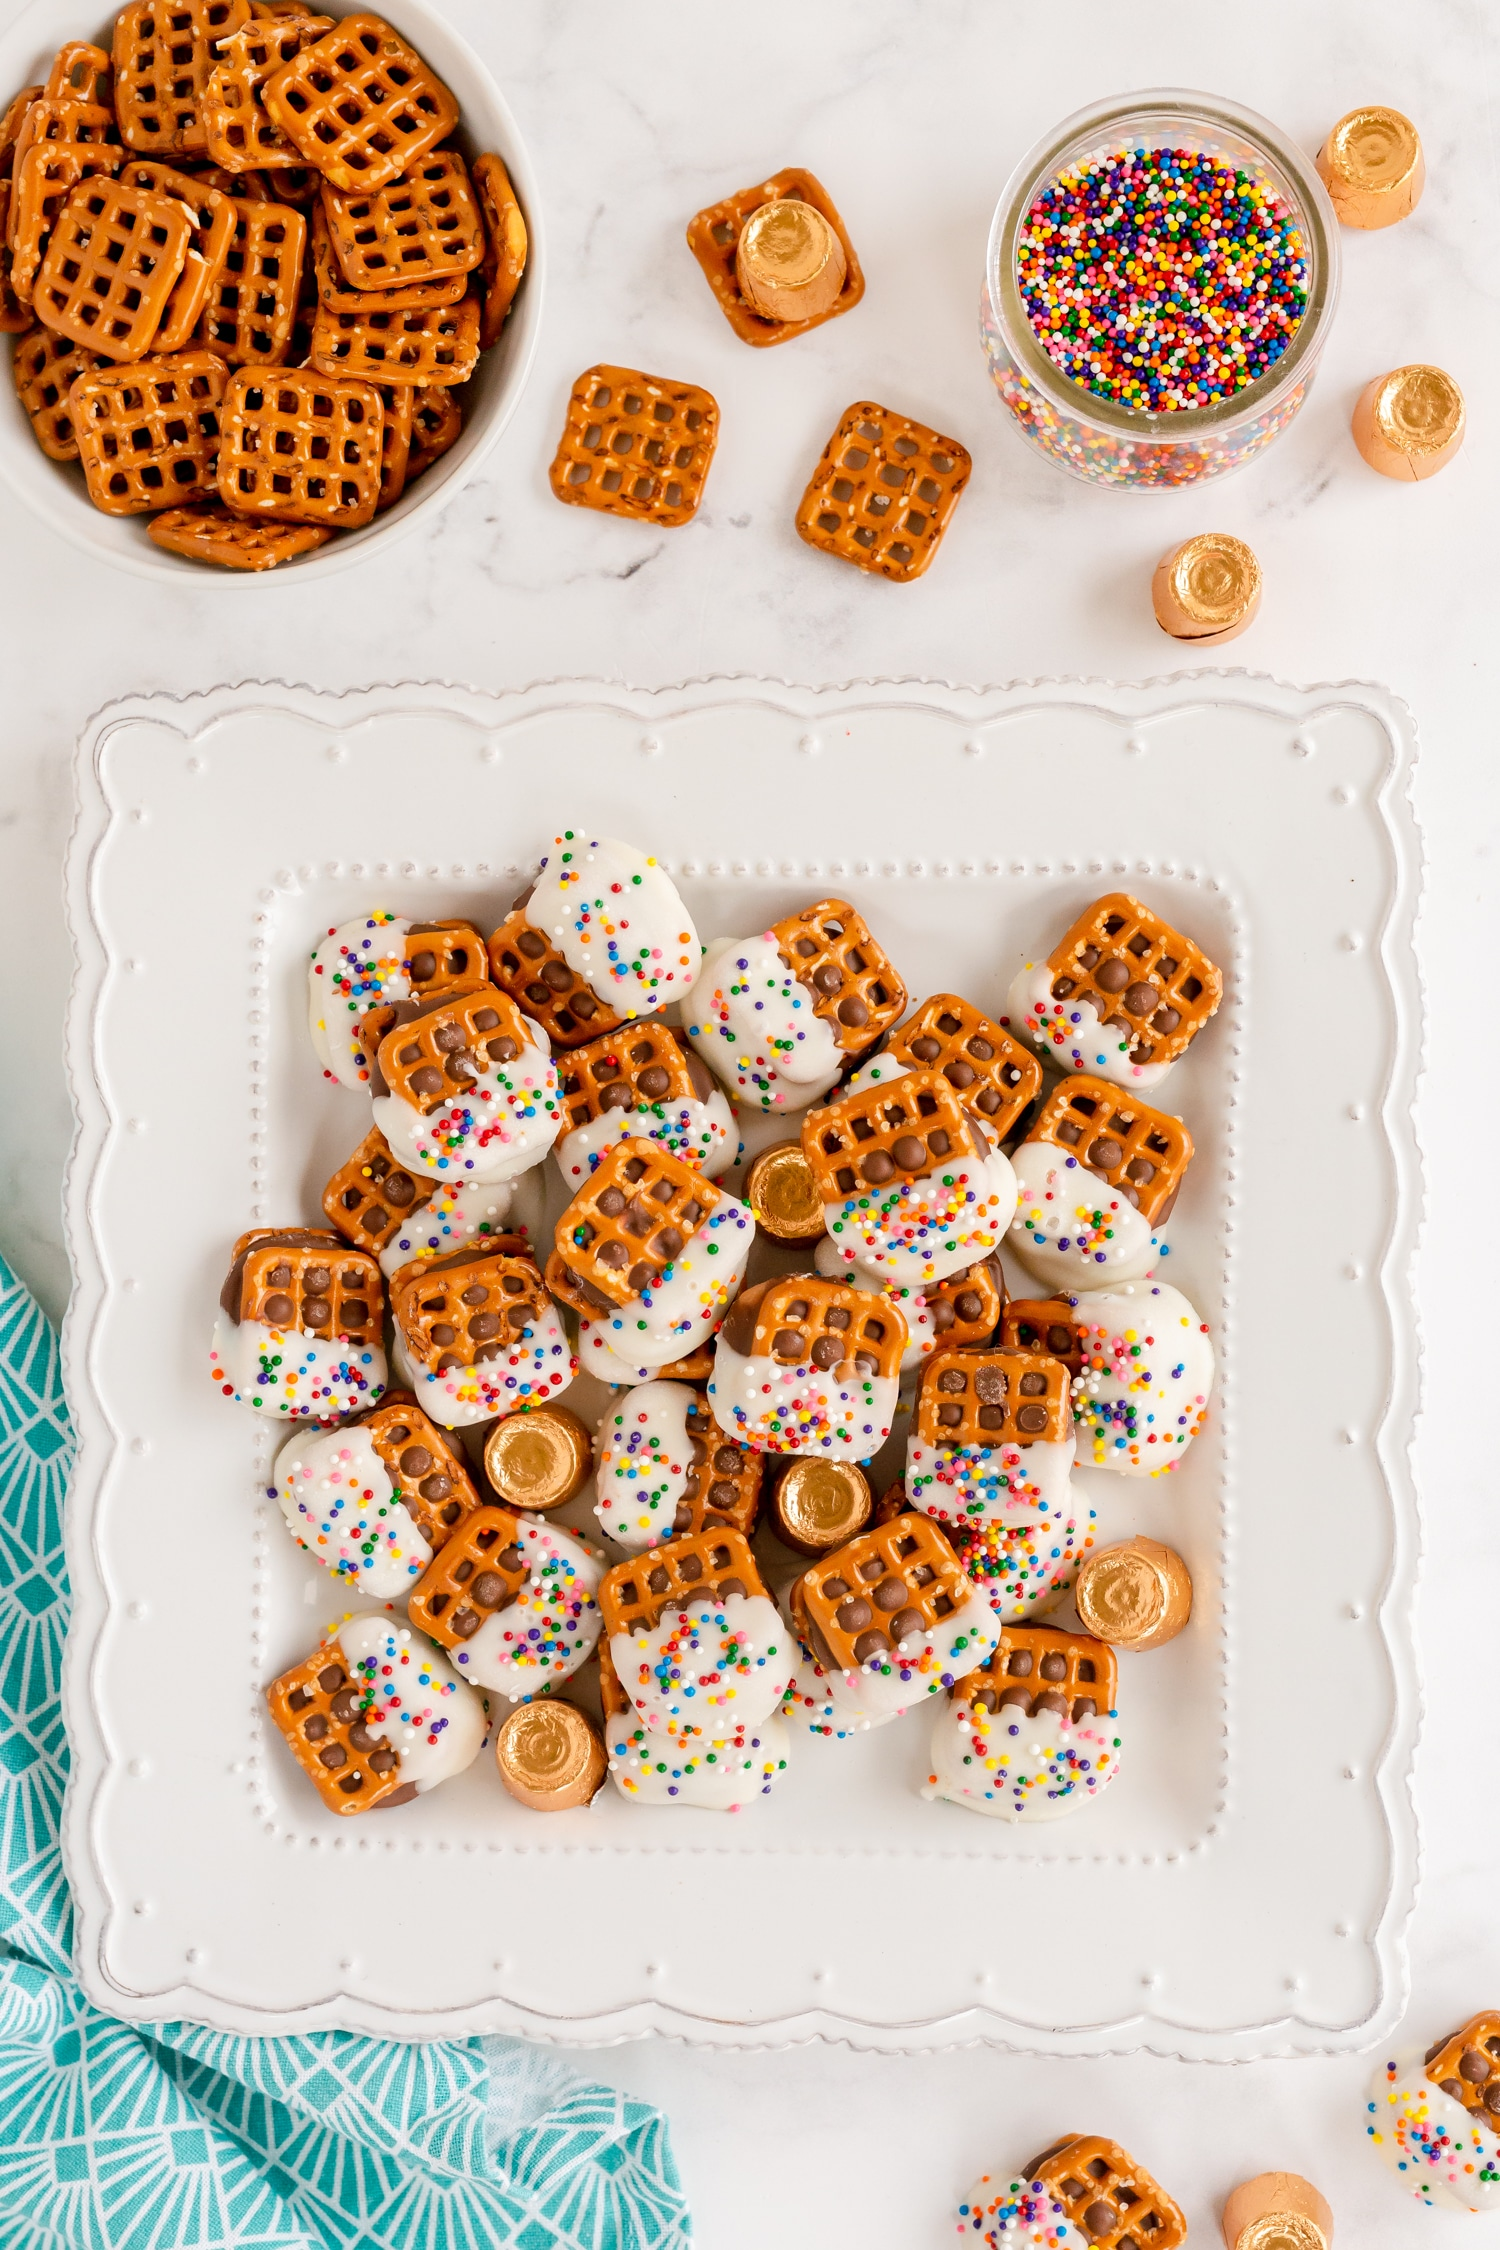 These Rolo Pretzel Bites are such an easy and delicious treat with few ingredients and a pop of colorful sprinkles!